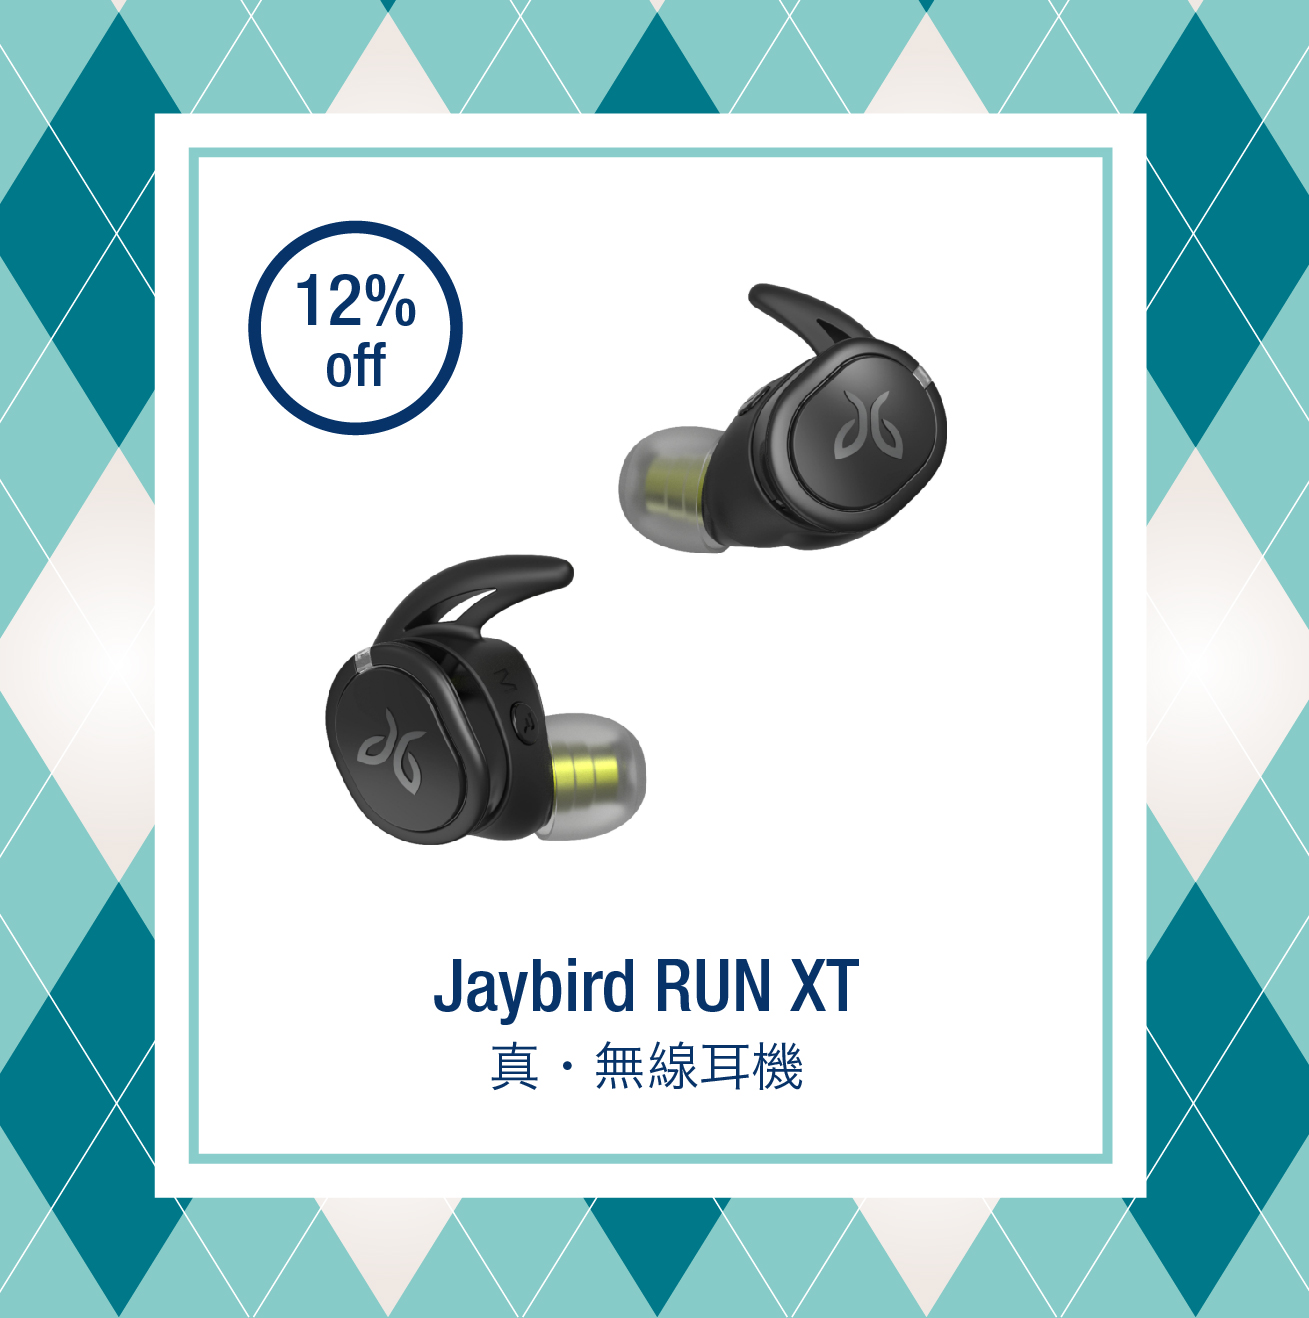 Jaybird RUN XT truly wireless earphones - #SportyDadRUN XT are now IPX7 sweat and waterproof, able to repel sweats and rains when you run to the fastest. The earphones come with adjustable EQ and a 4-hour playtime, with an additional 8-hour from the charging case, or speedy charge in 5 minutes for an hour use.